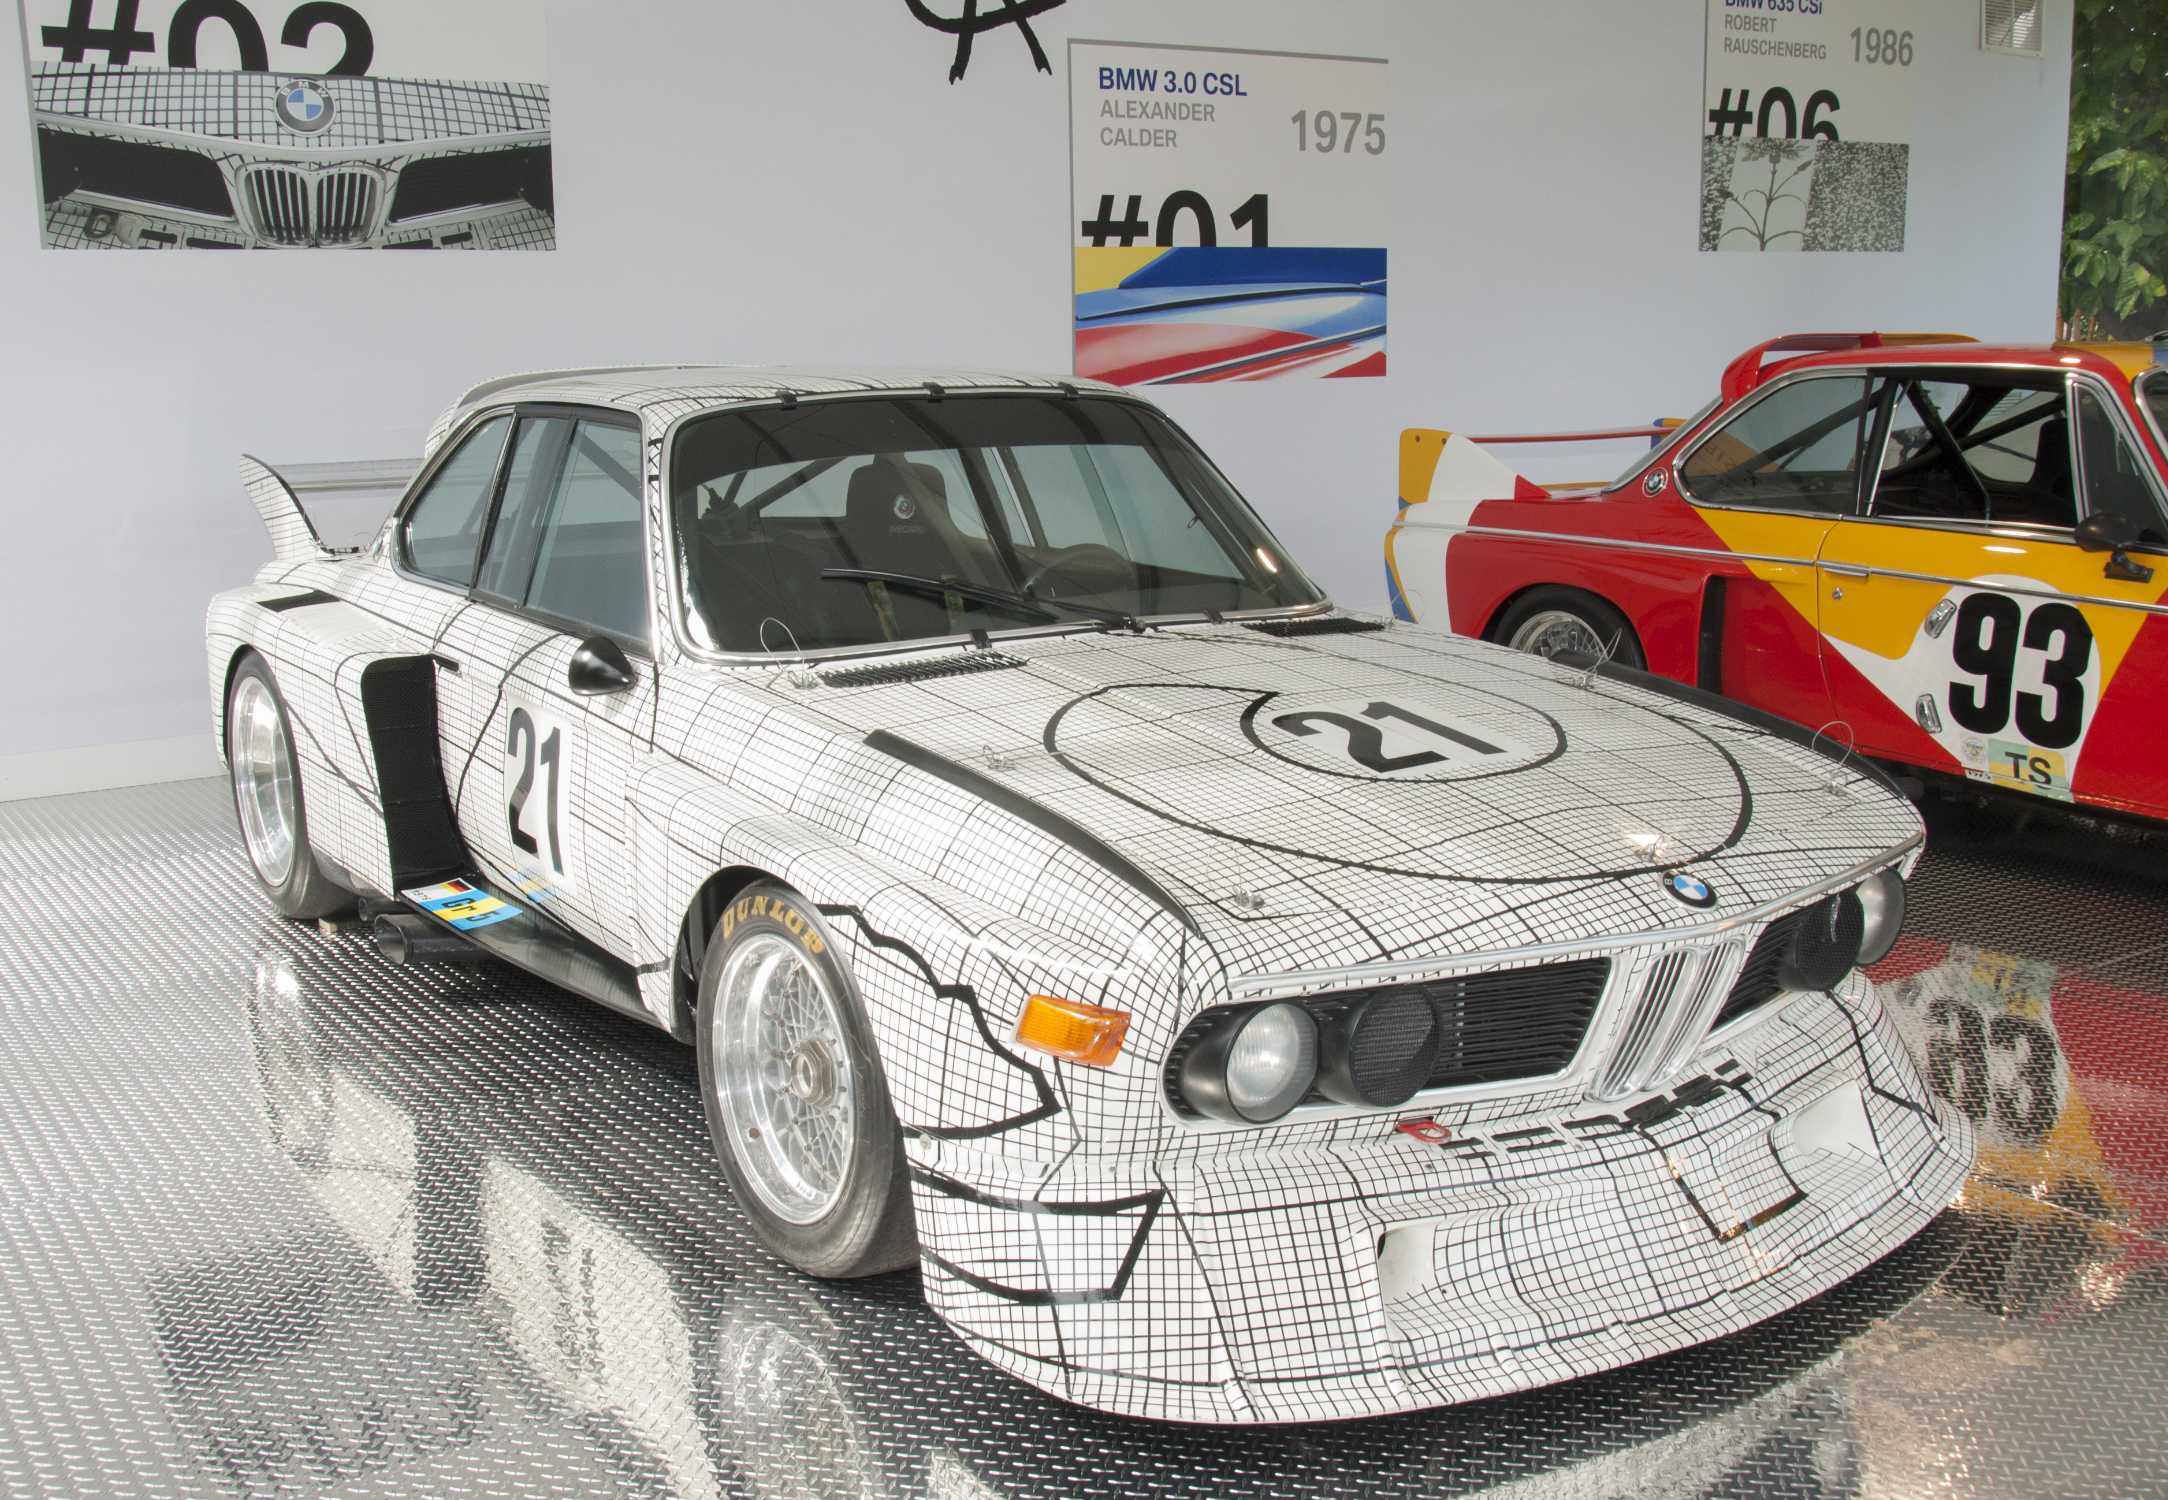 BMW art car de Frank Stella